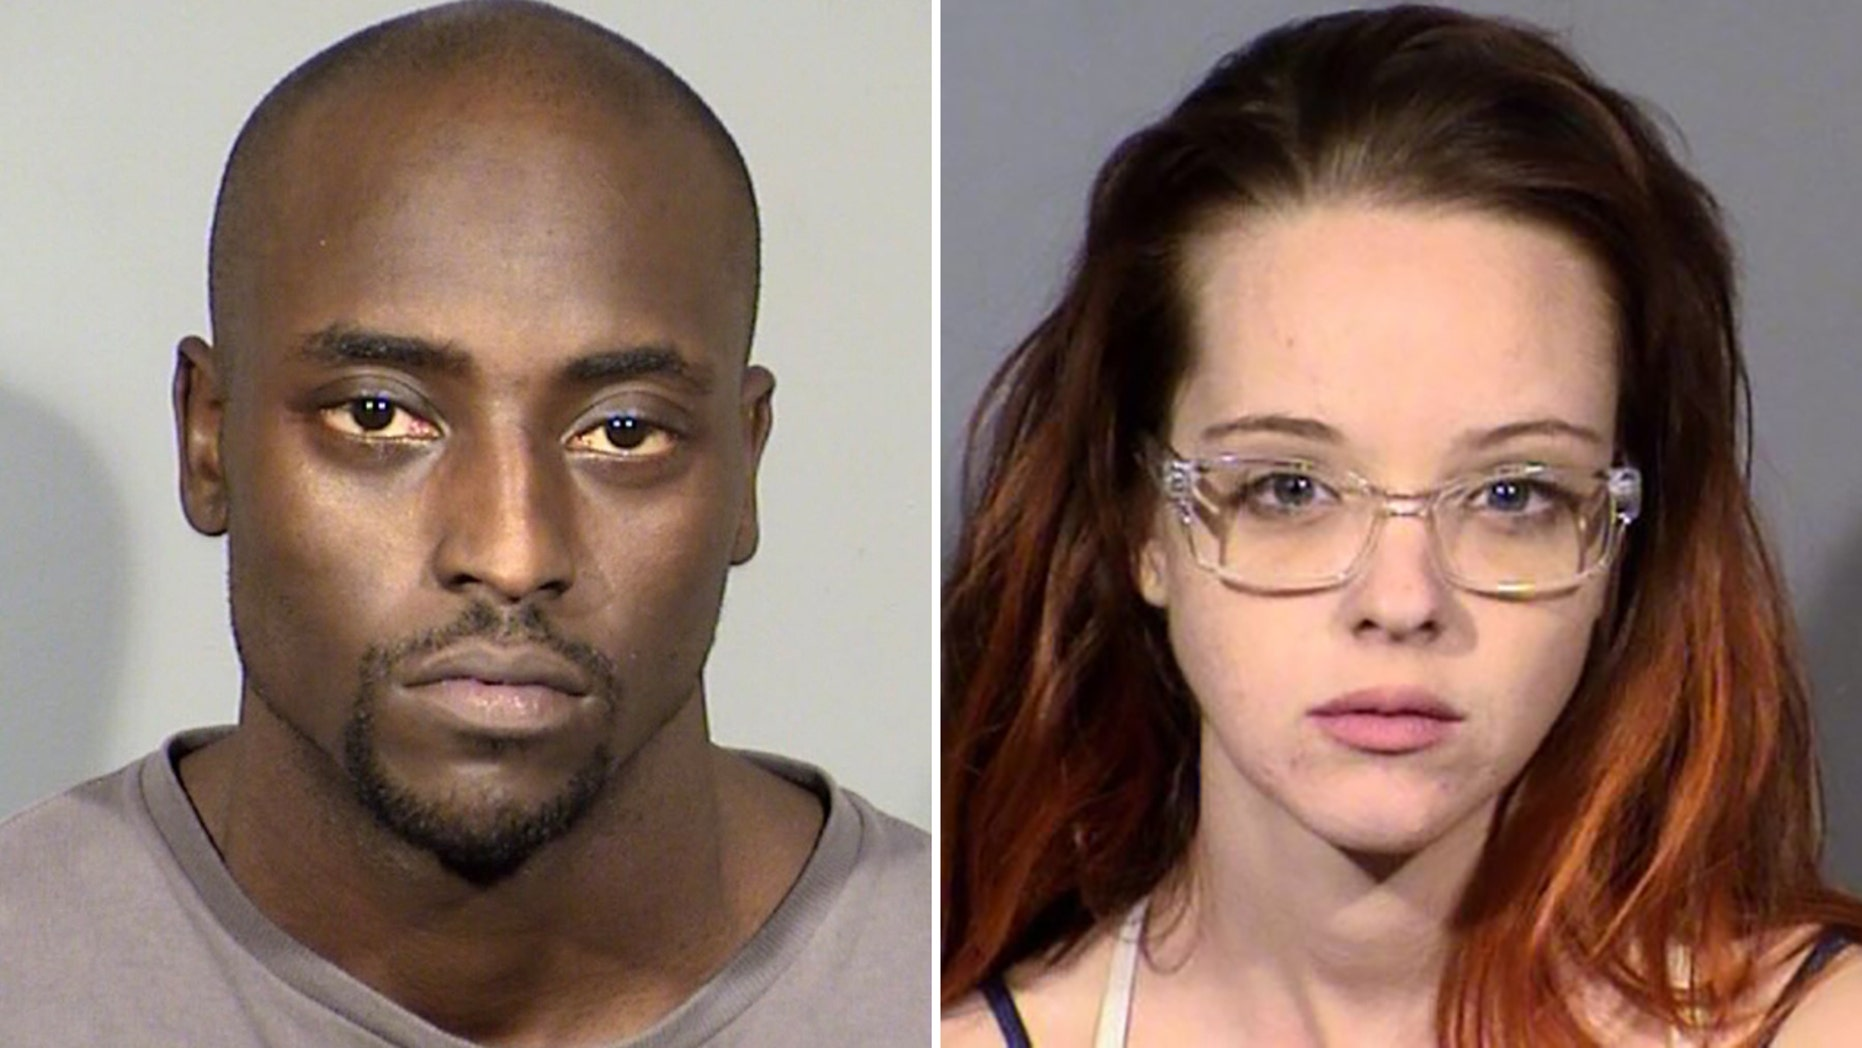 Ex-NFL player Cierre Wood, 28, and his 25-year-old girlfriend, Amy Taylor, were arrested Wednesday in the death of Taylor's 5-year-old daughter, Las Vegas.